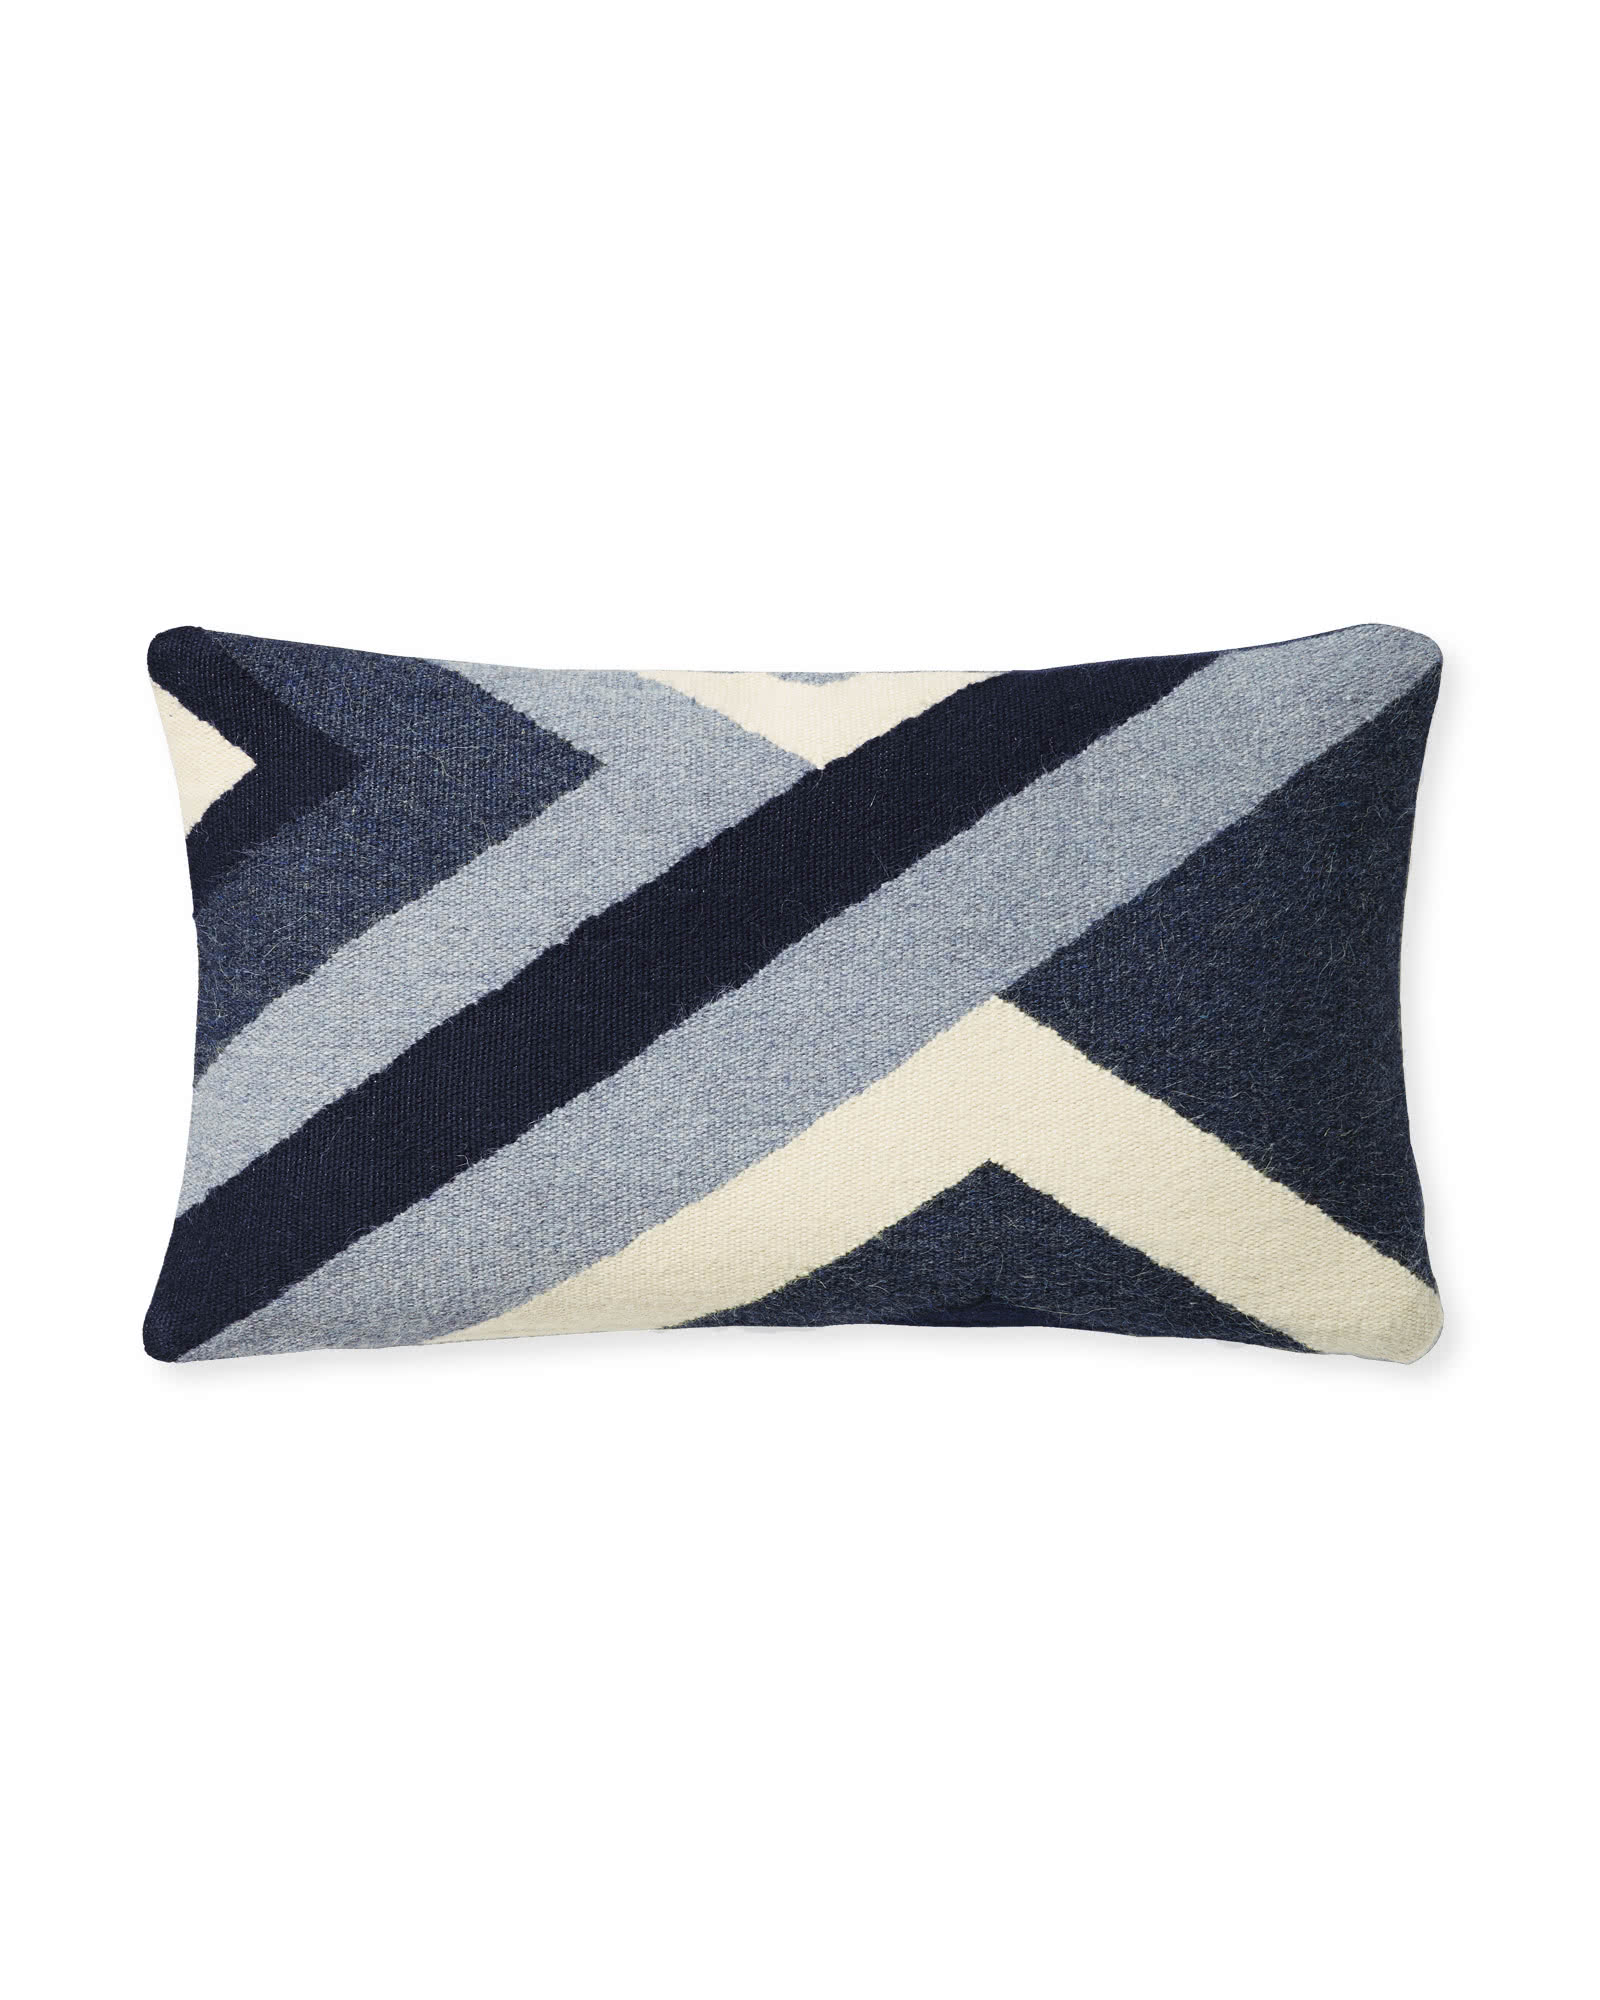 Devon Pillow Cover, Blue